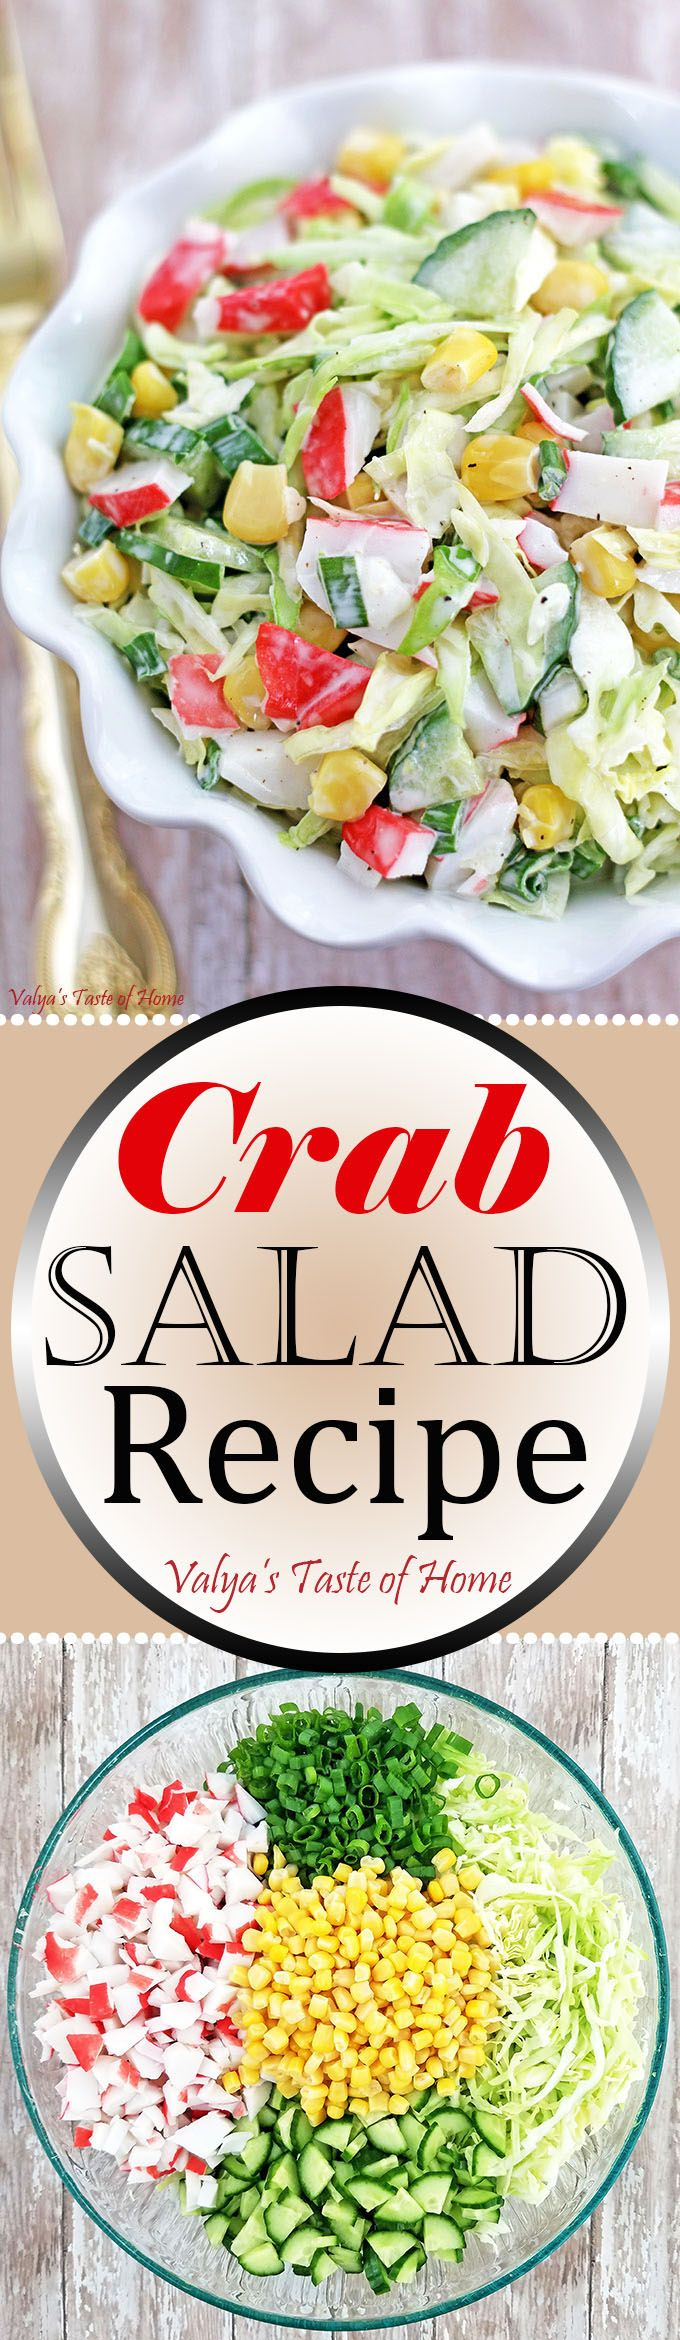 Crunchy, so flavorful, and loaded with crab meat! The salad is perfect for any occasion or just for a simple family dinner. I usually serve it with mashed potatoes, as kids like it. Other delicious wa (Shrimp Sandwich Recipes)